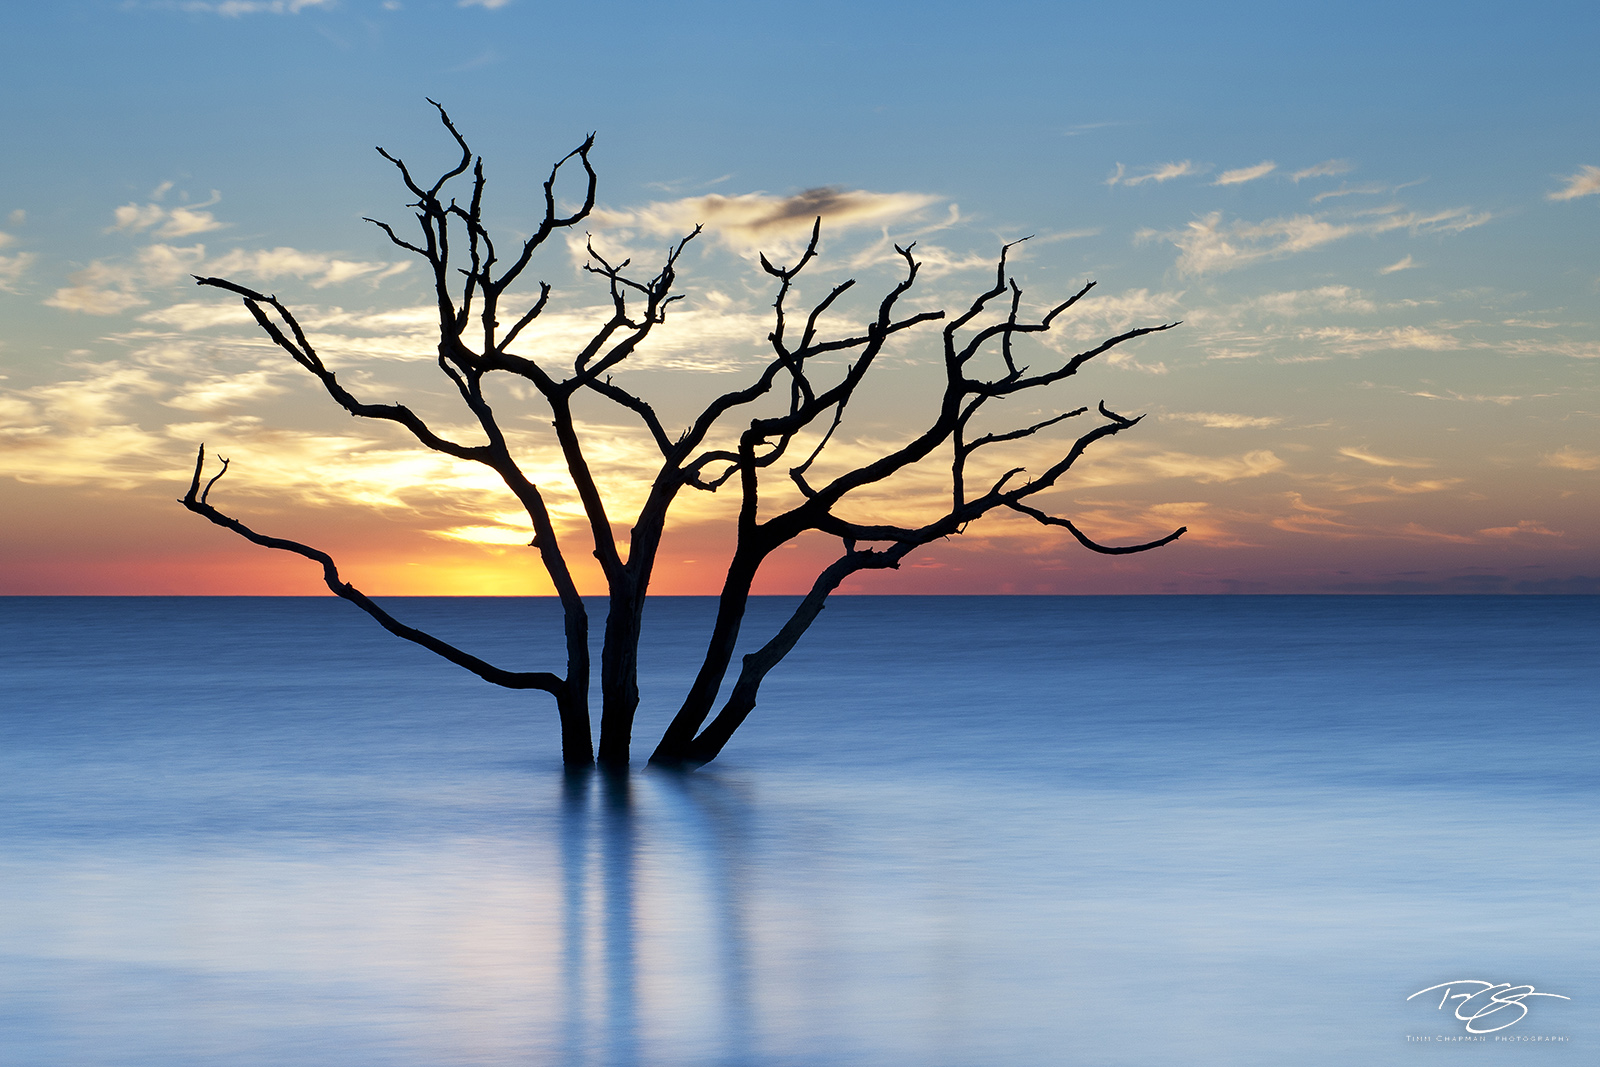 South Carolina, boneyard, skeleton, tree, botany bay, edisto island, dead tree, sea of tranquility, water, coast, surf, ocean, daybreak, firey, fire, sunrise, peace, peaceful, calming, zen, yoga, silh, photo